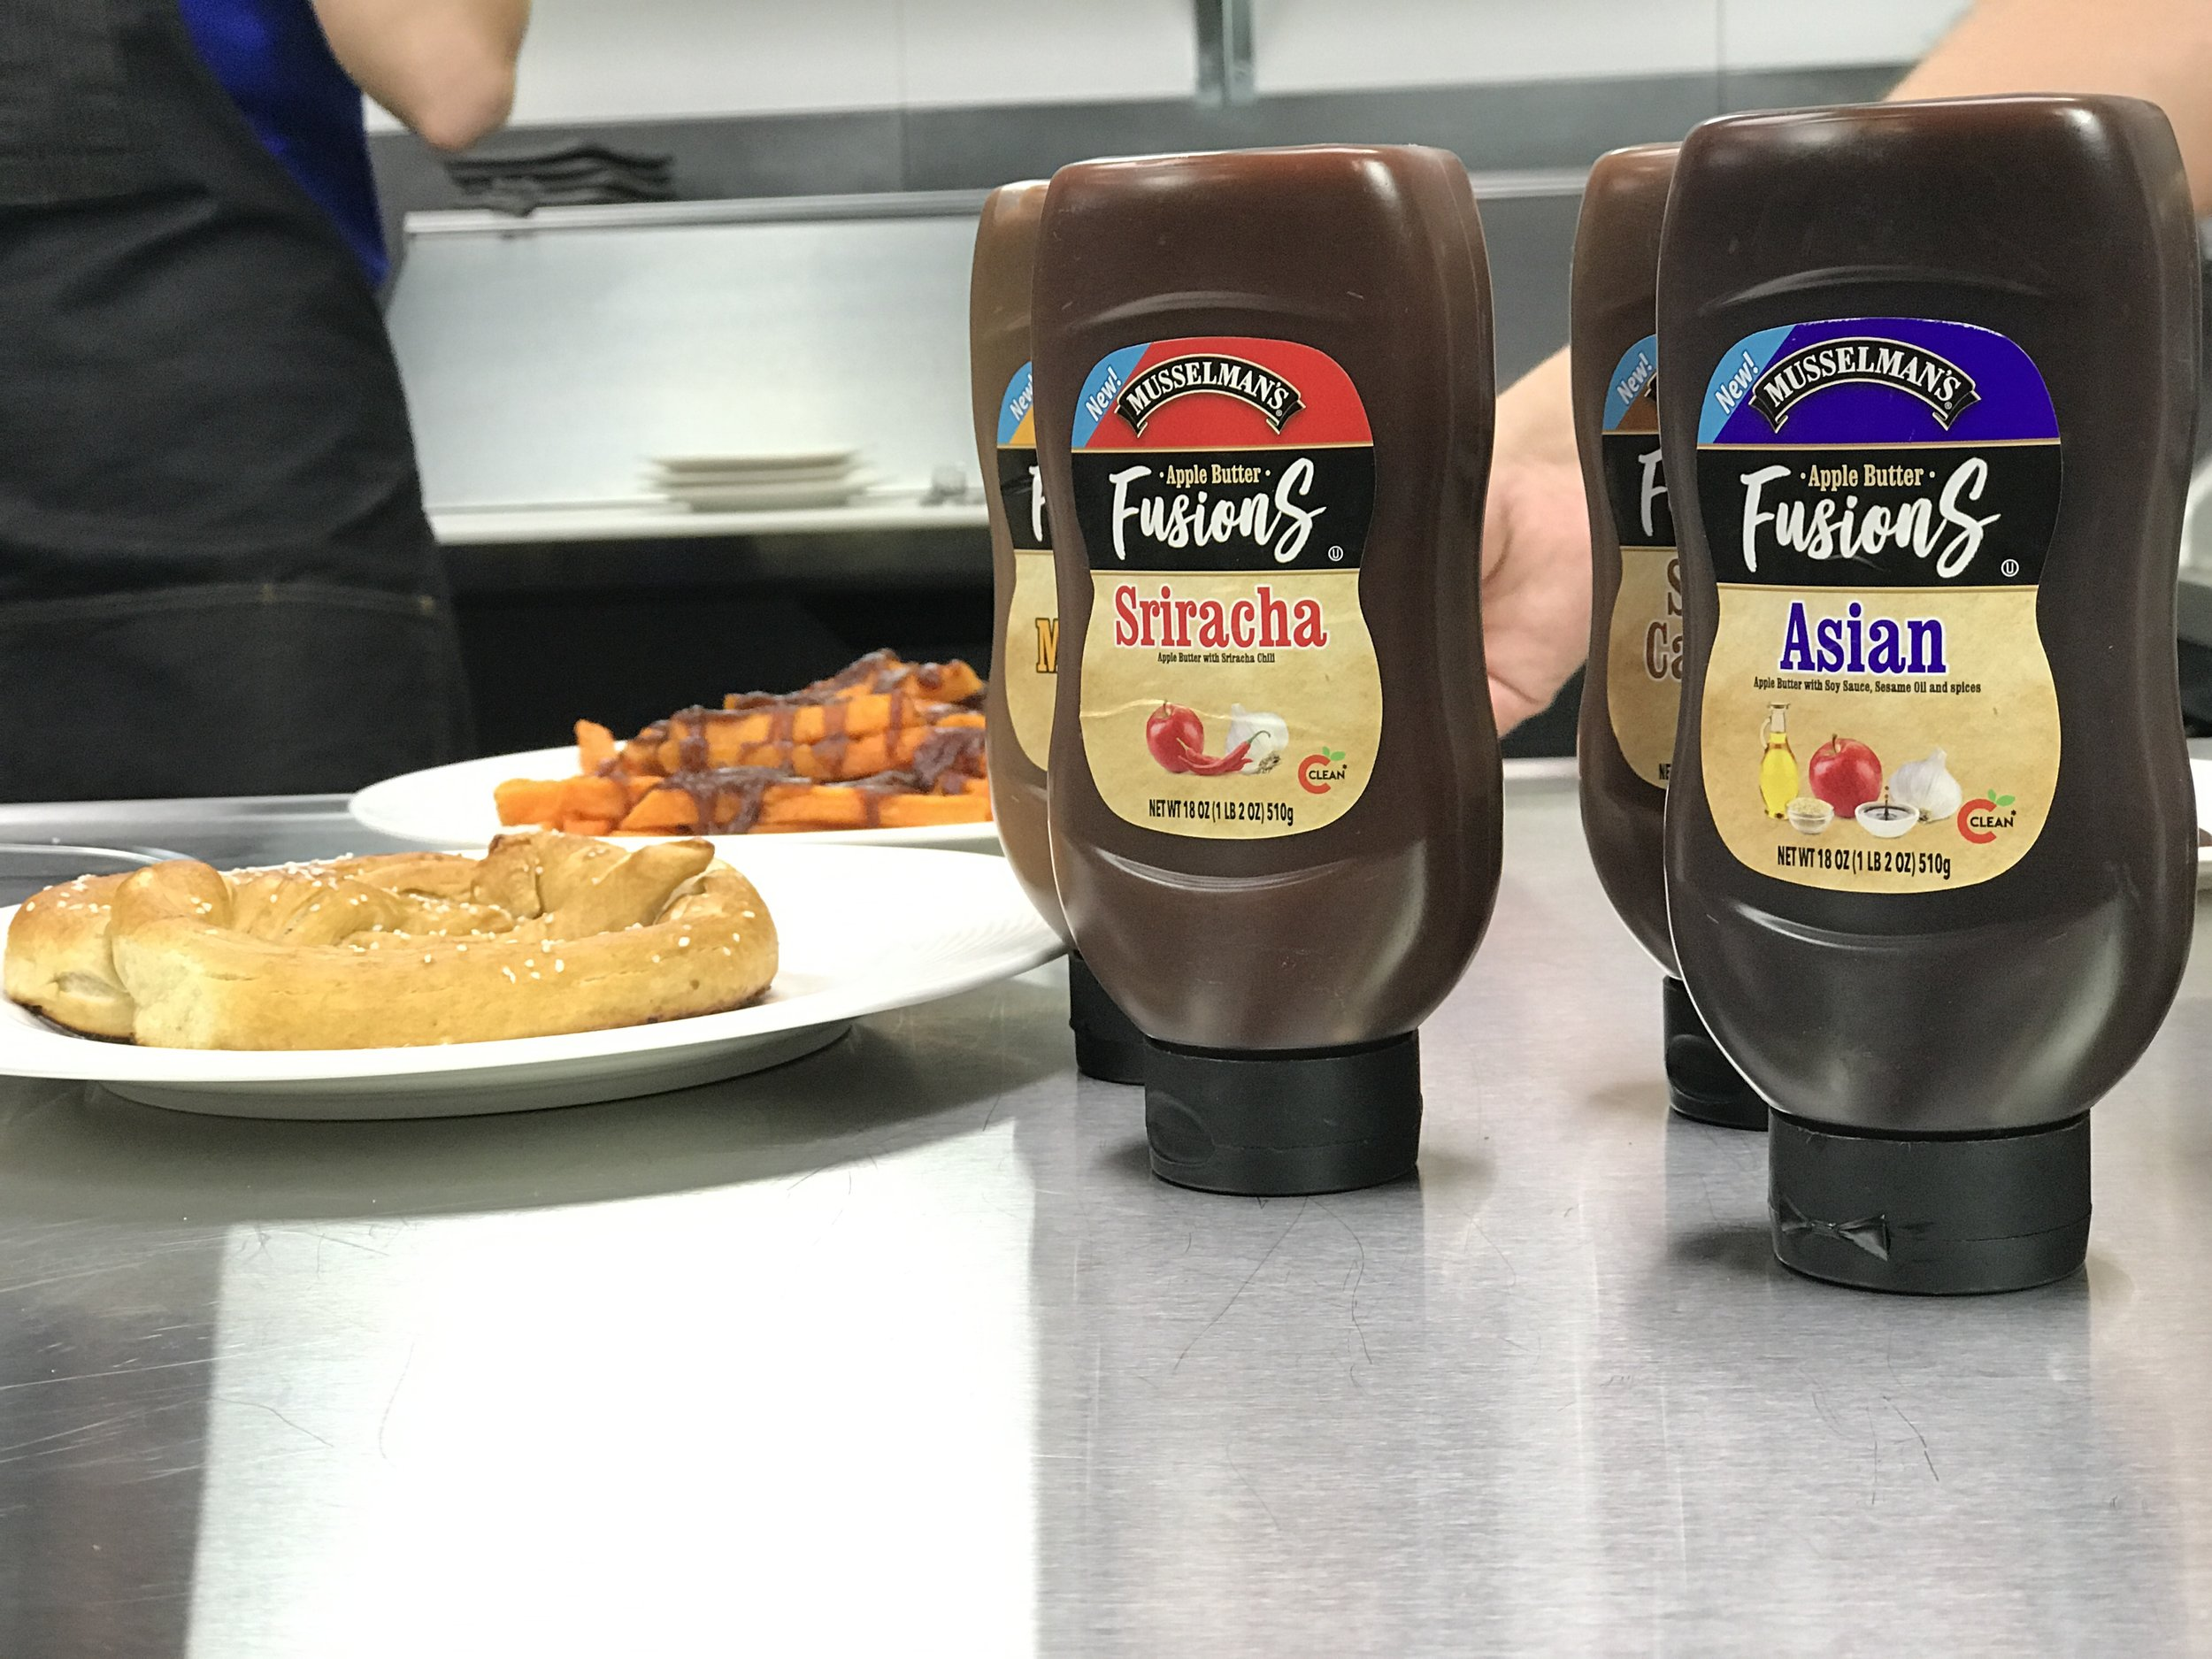 Musselman's Apple Butter Fusions Sriracha and Asian Flavors |   Foodable Network